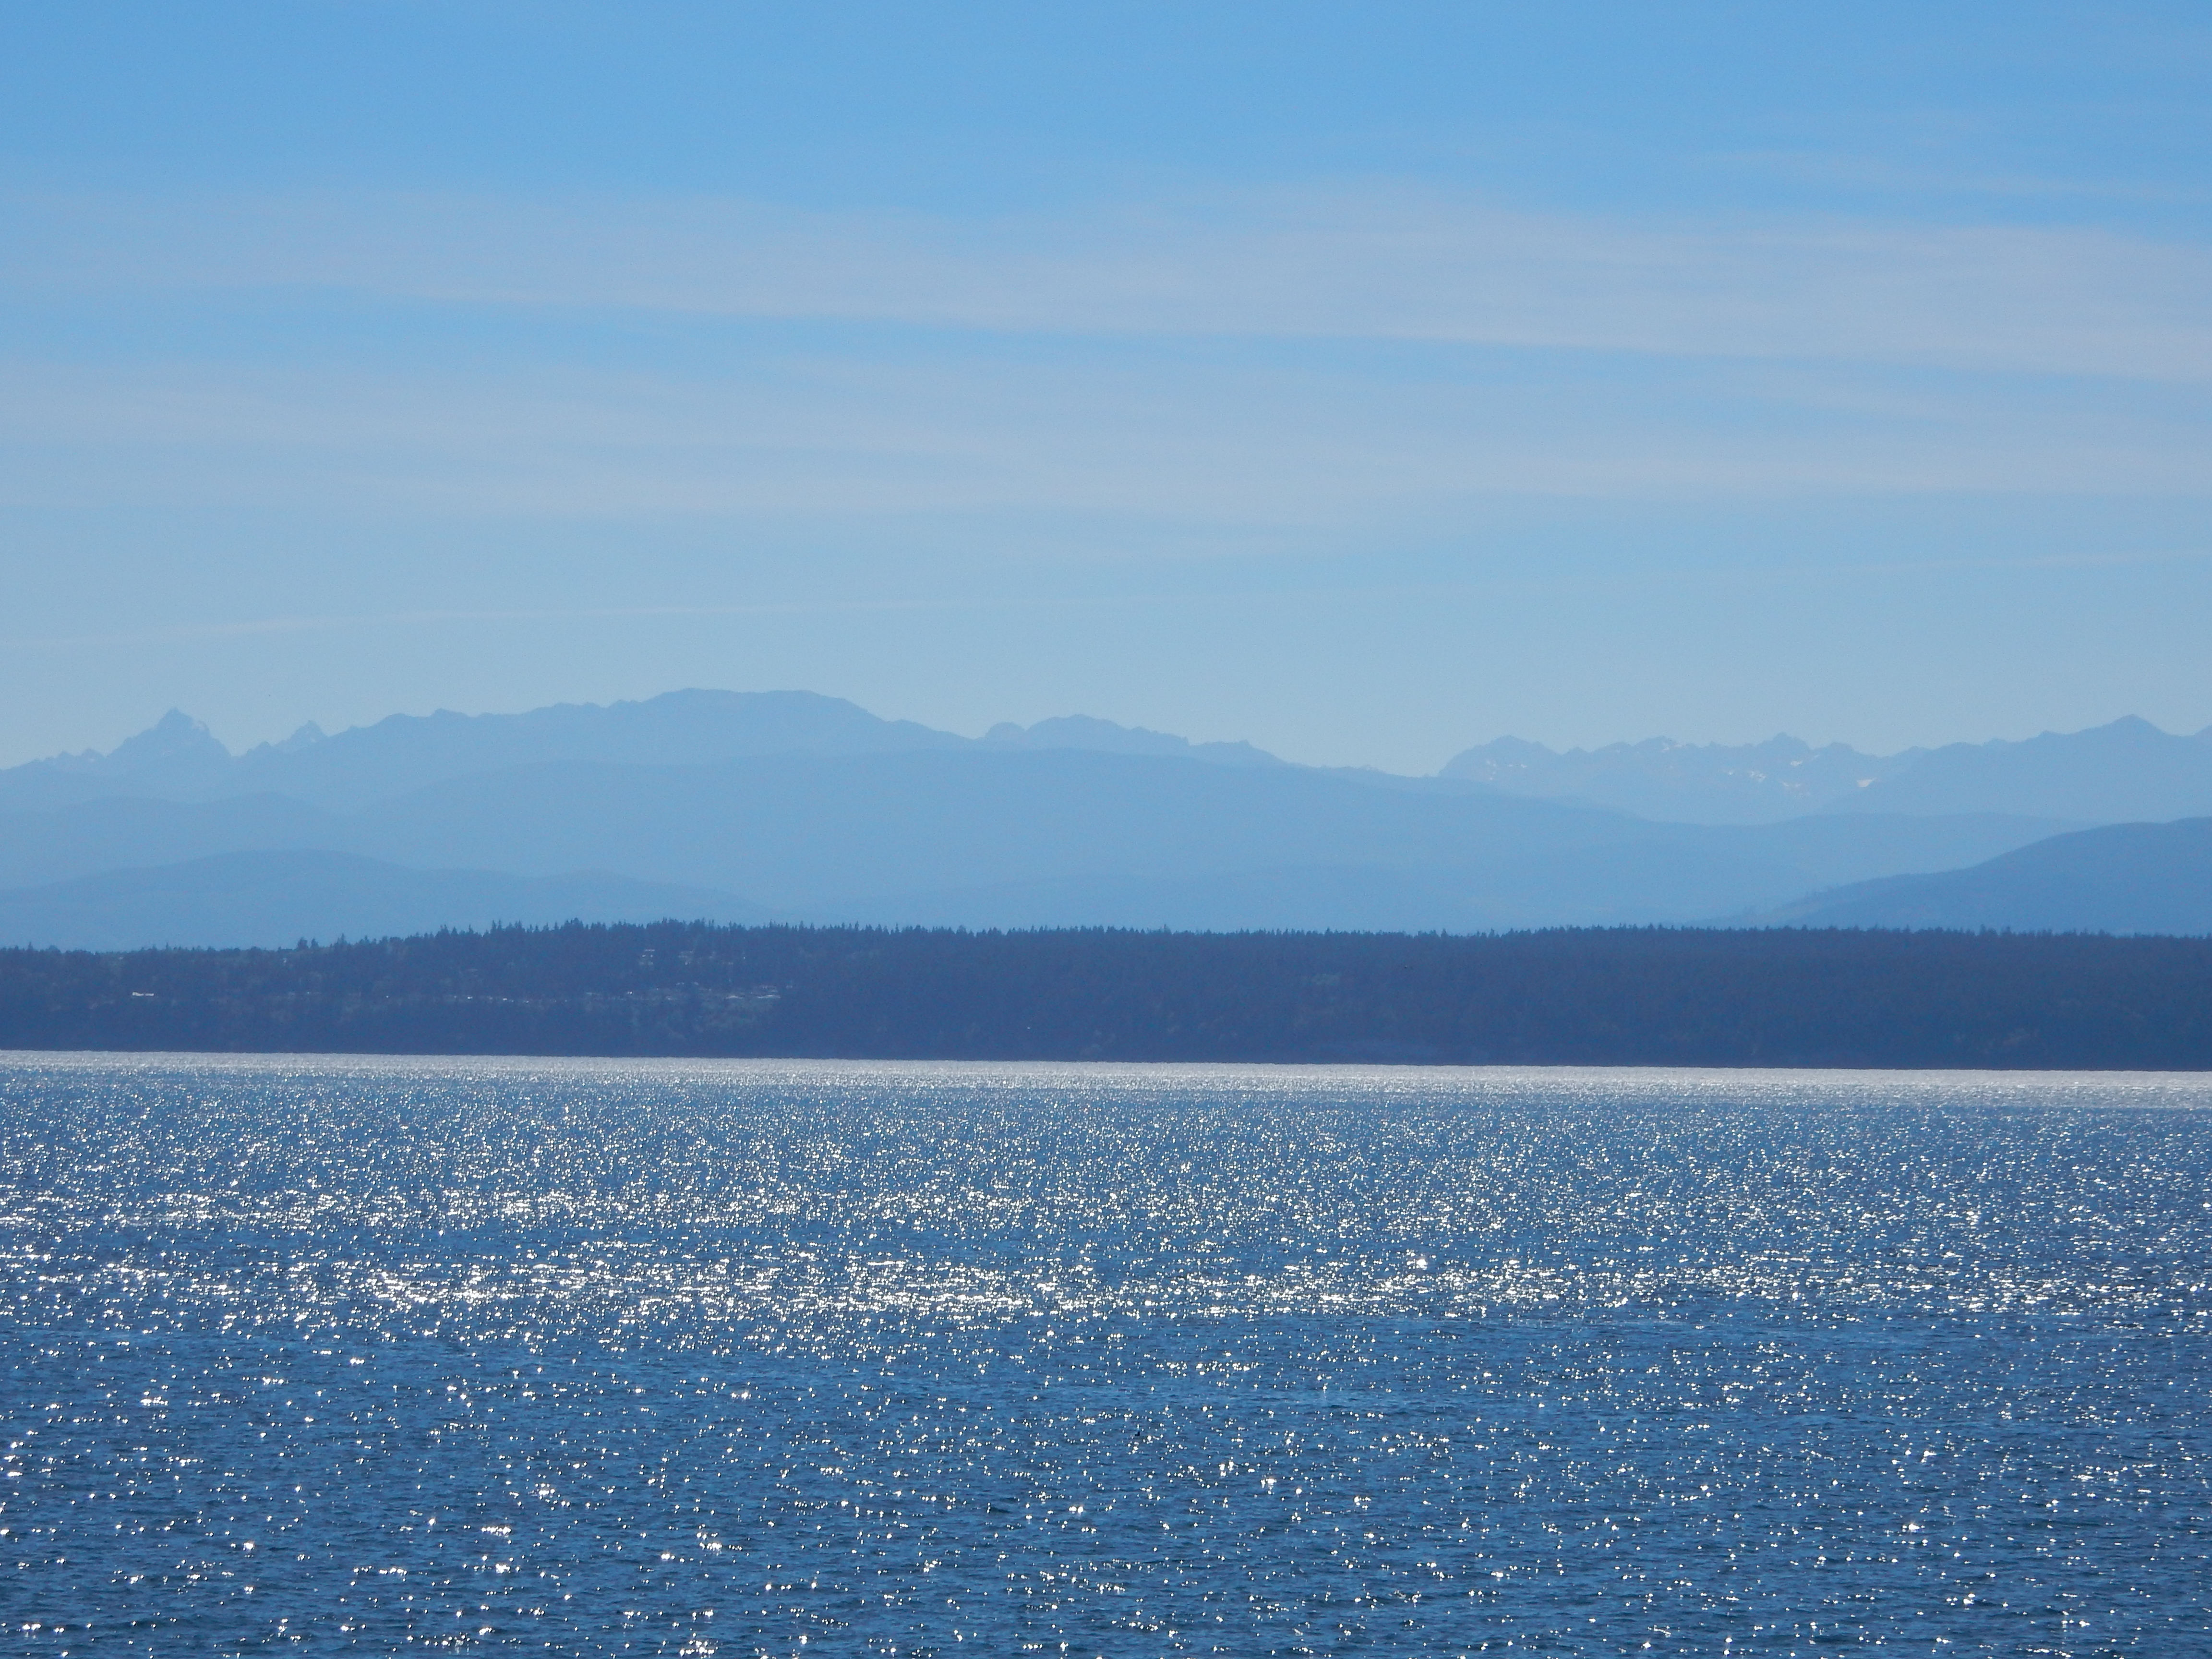 A slightly closer view of the Olympic Mountains.